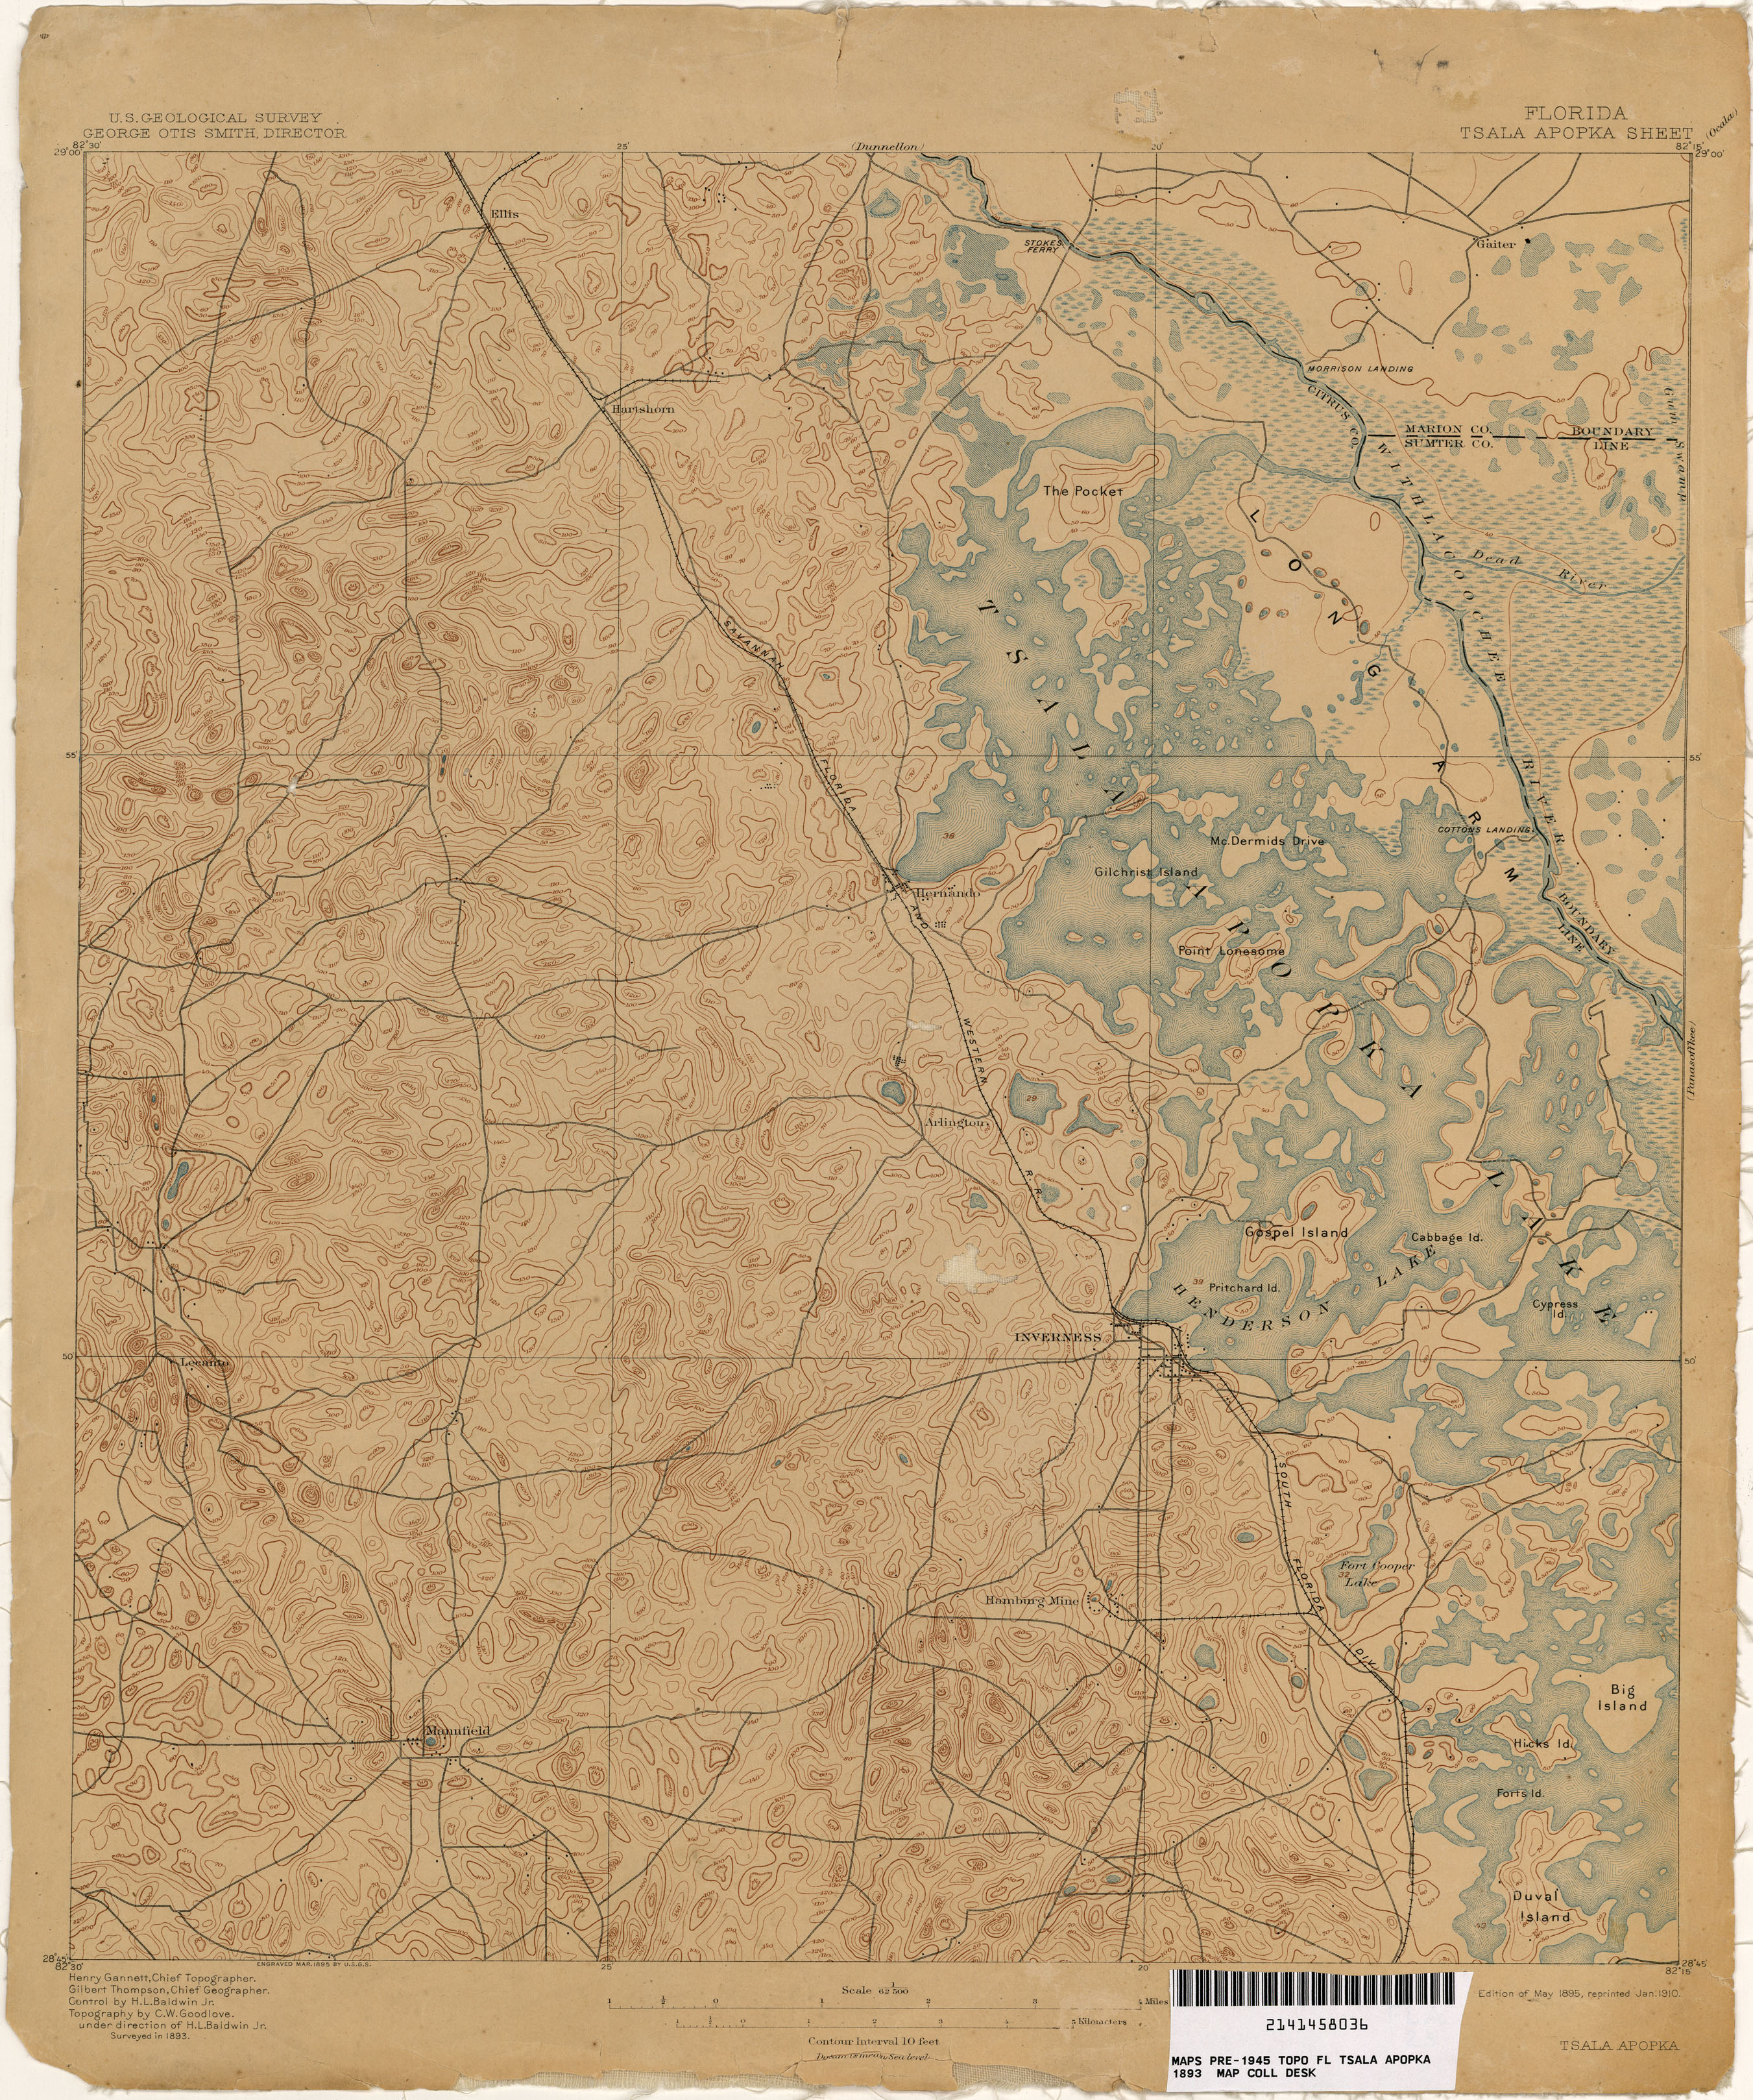 Topographical Map Of Florida.Florida Historical Topographic Maps Perry Castaneda Map Collection